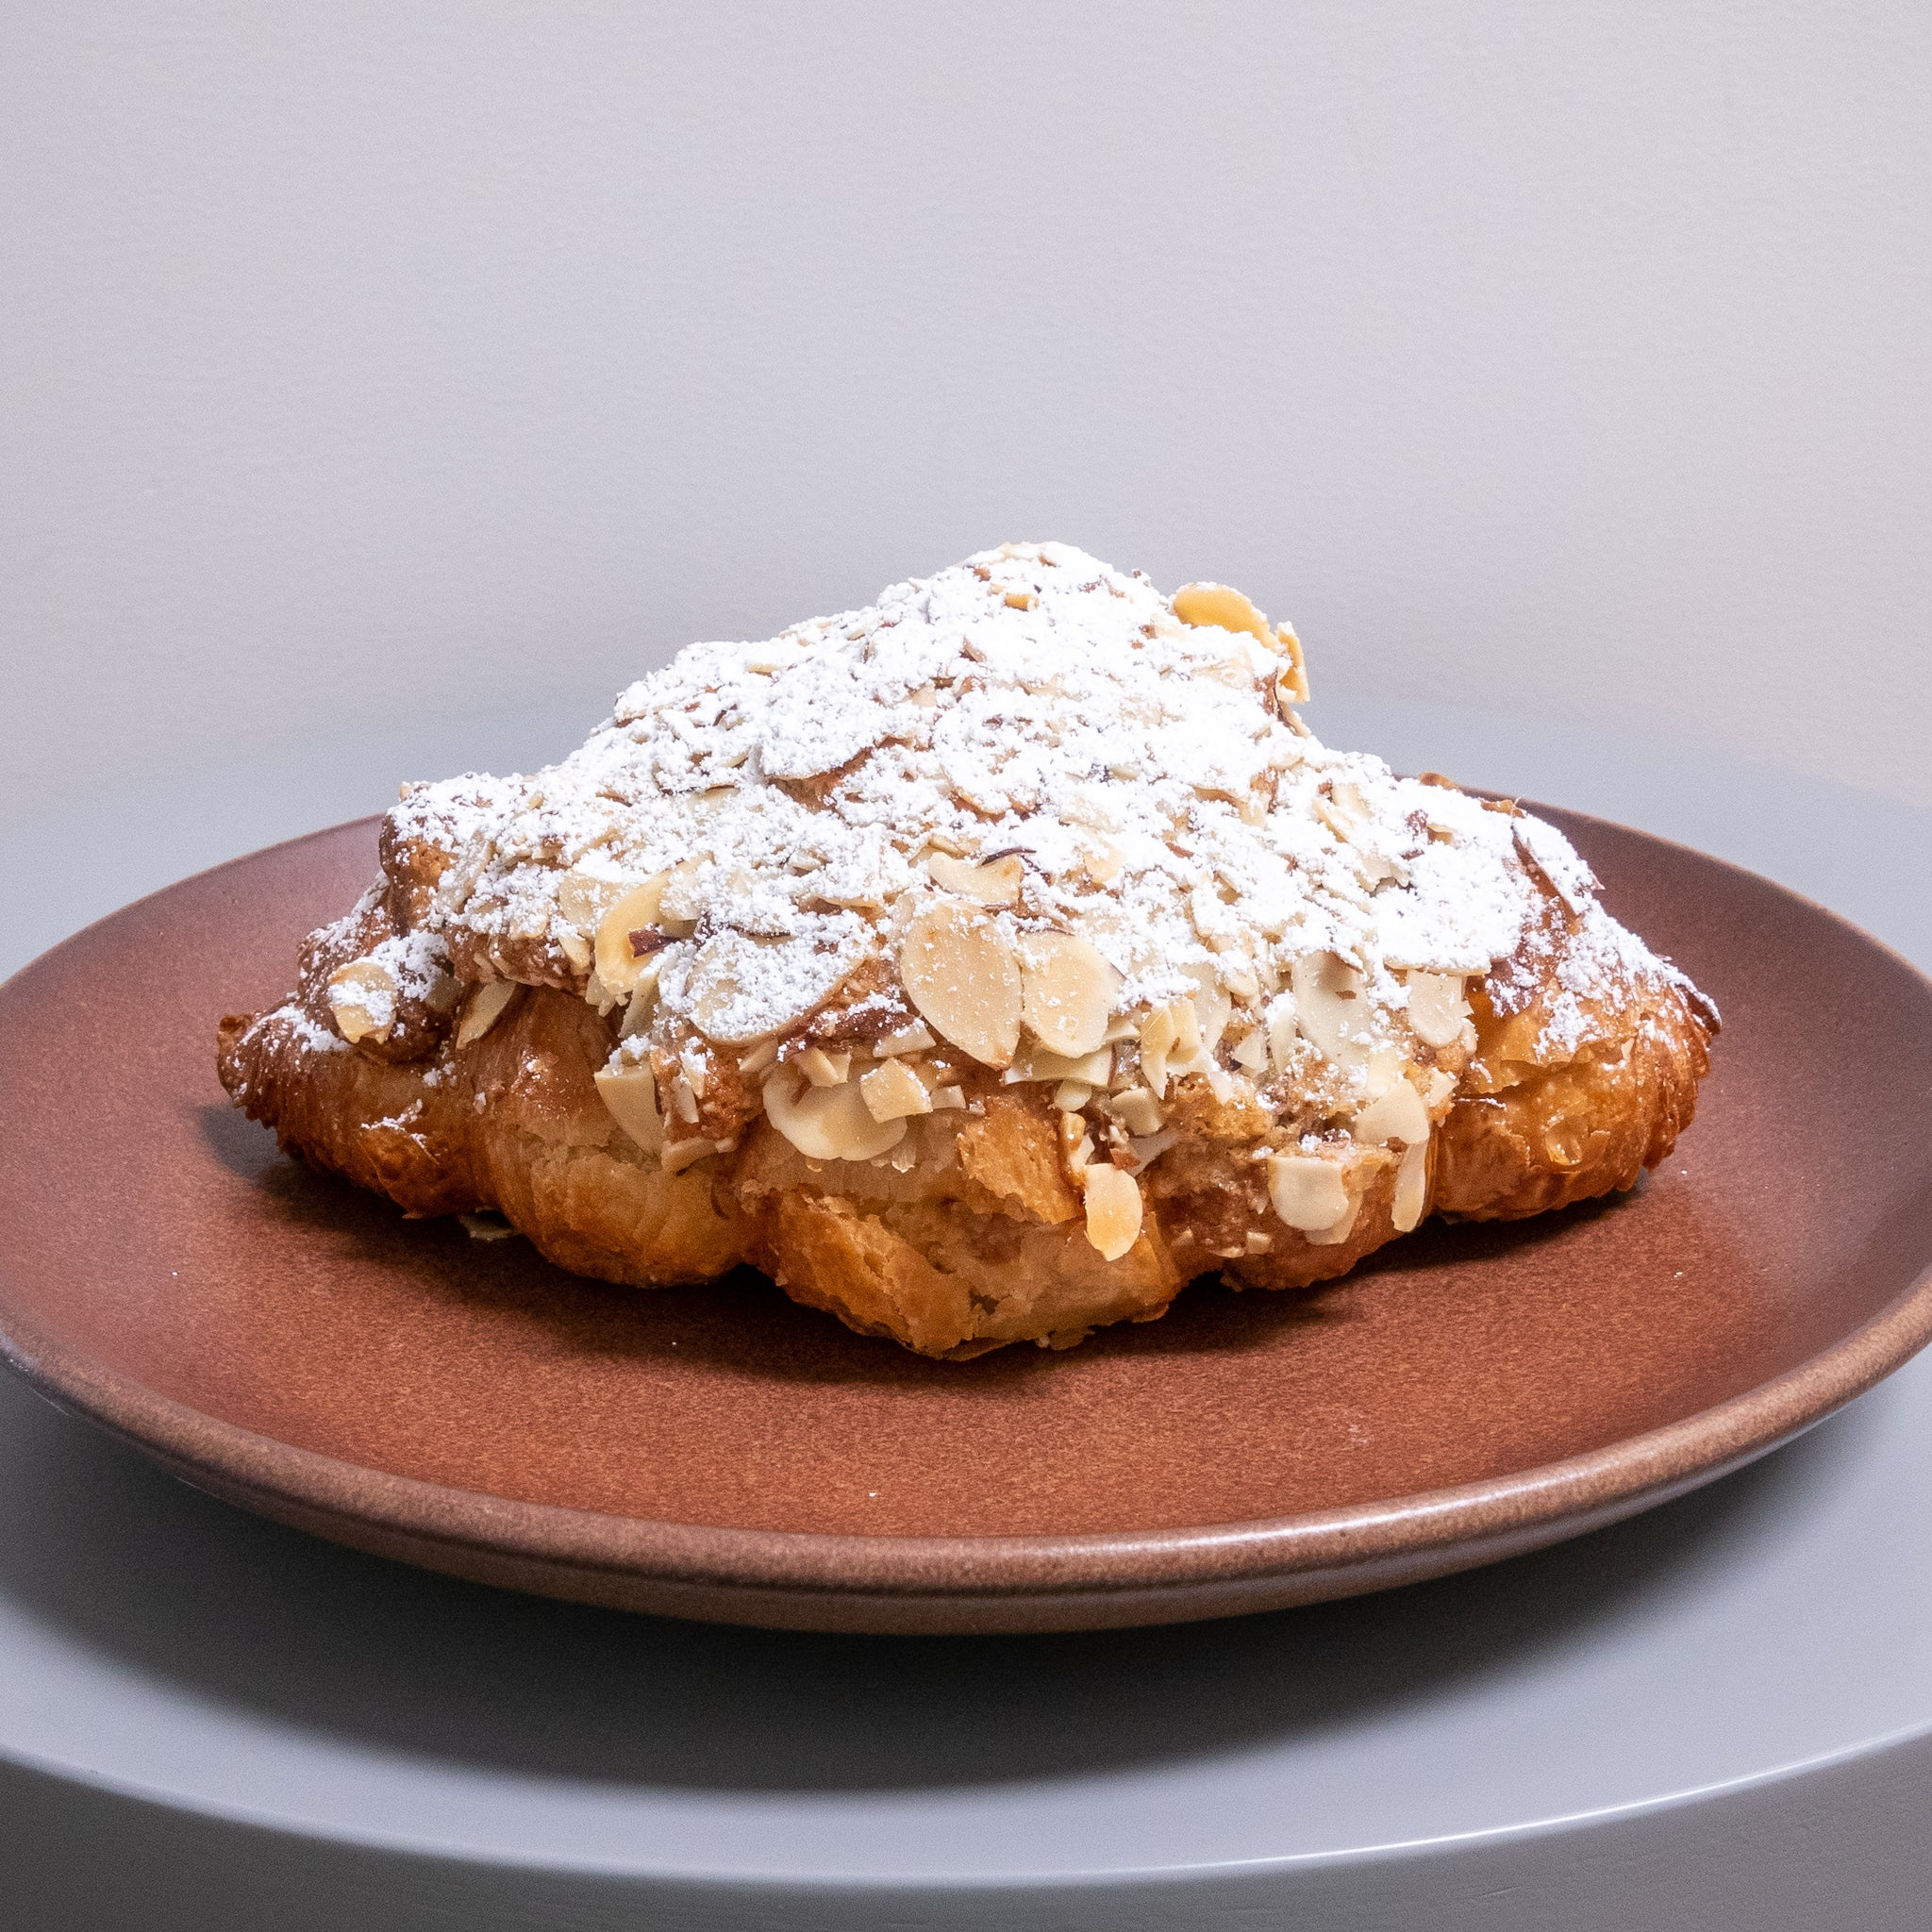 Strawberry almond croissant